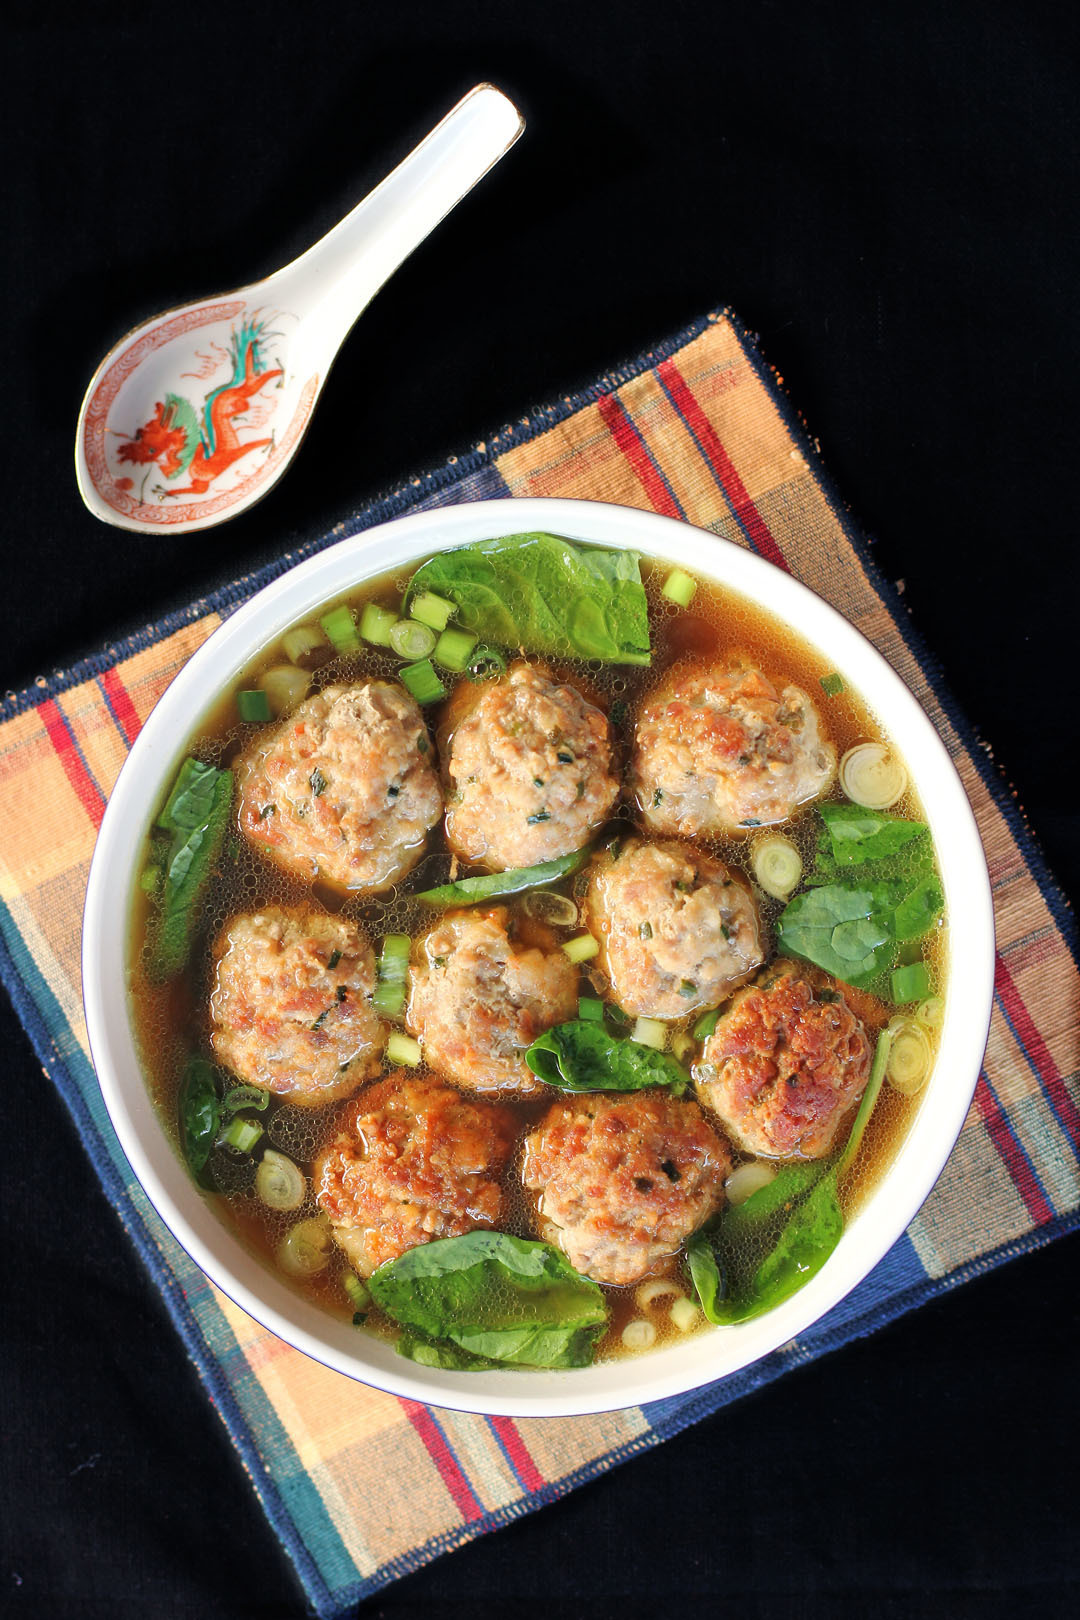 Pork and Prawn Balls in Aromatic Broth